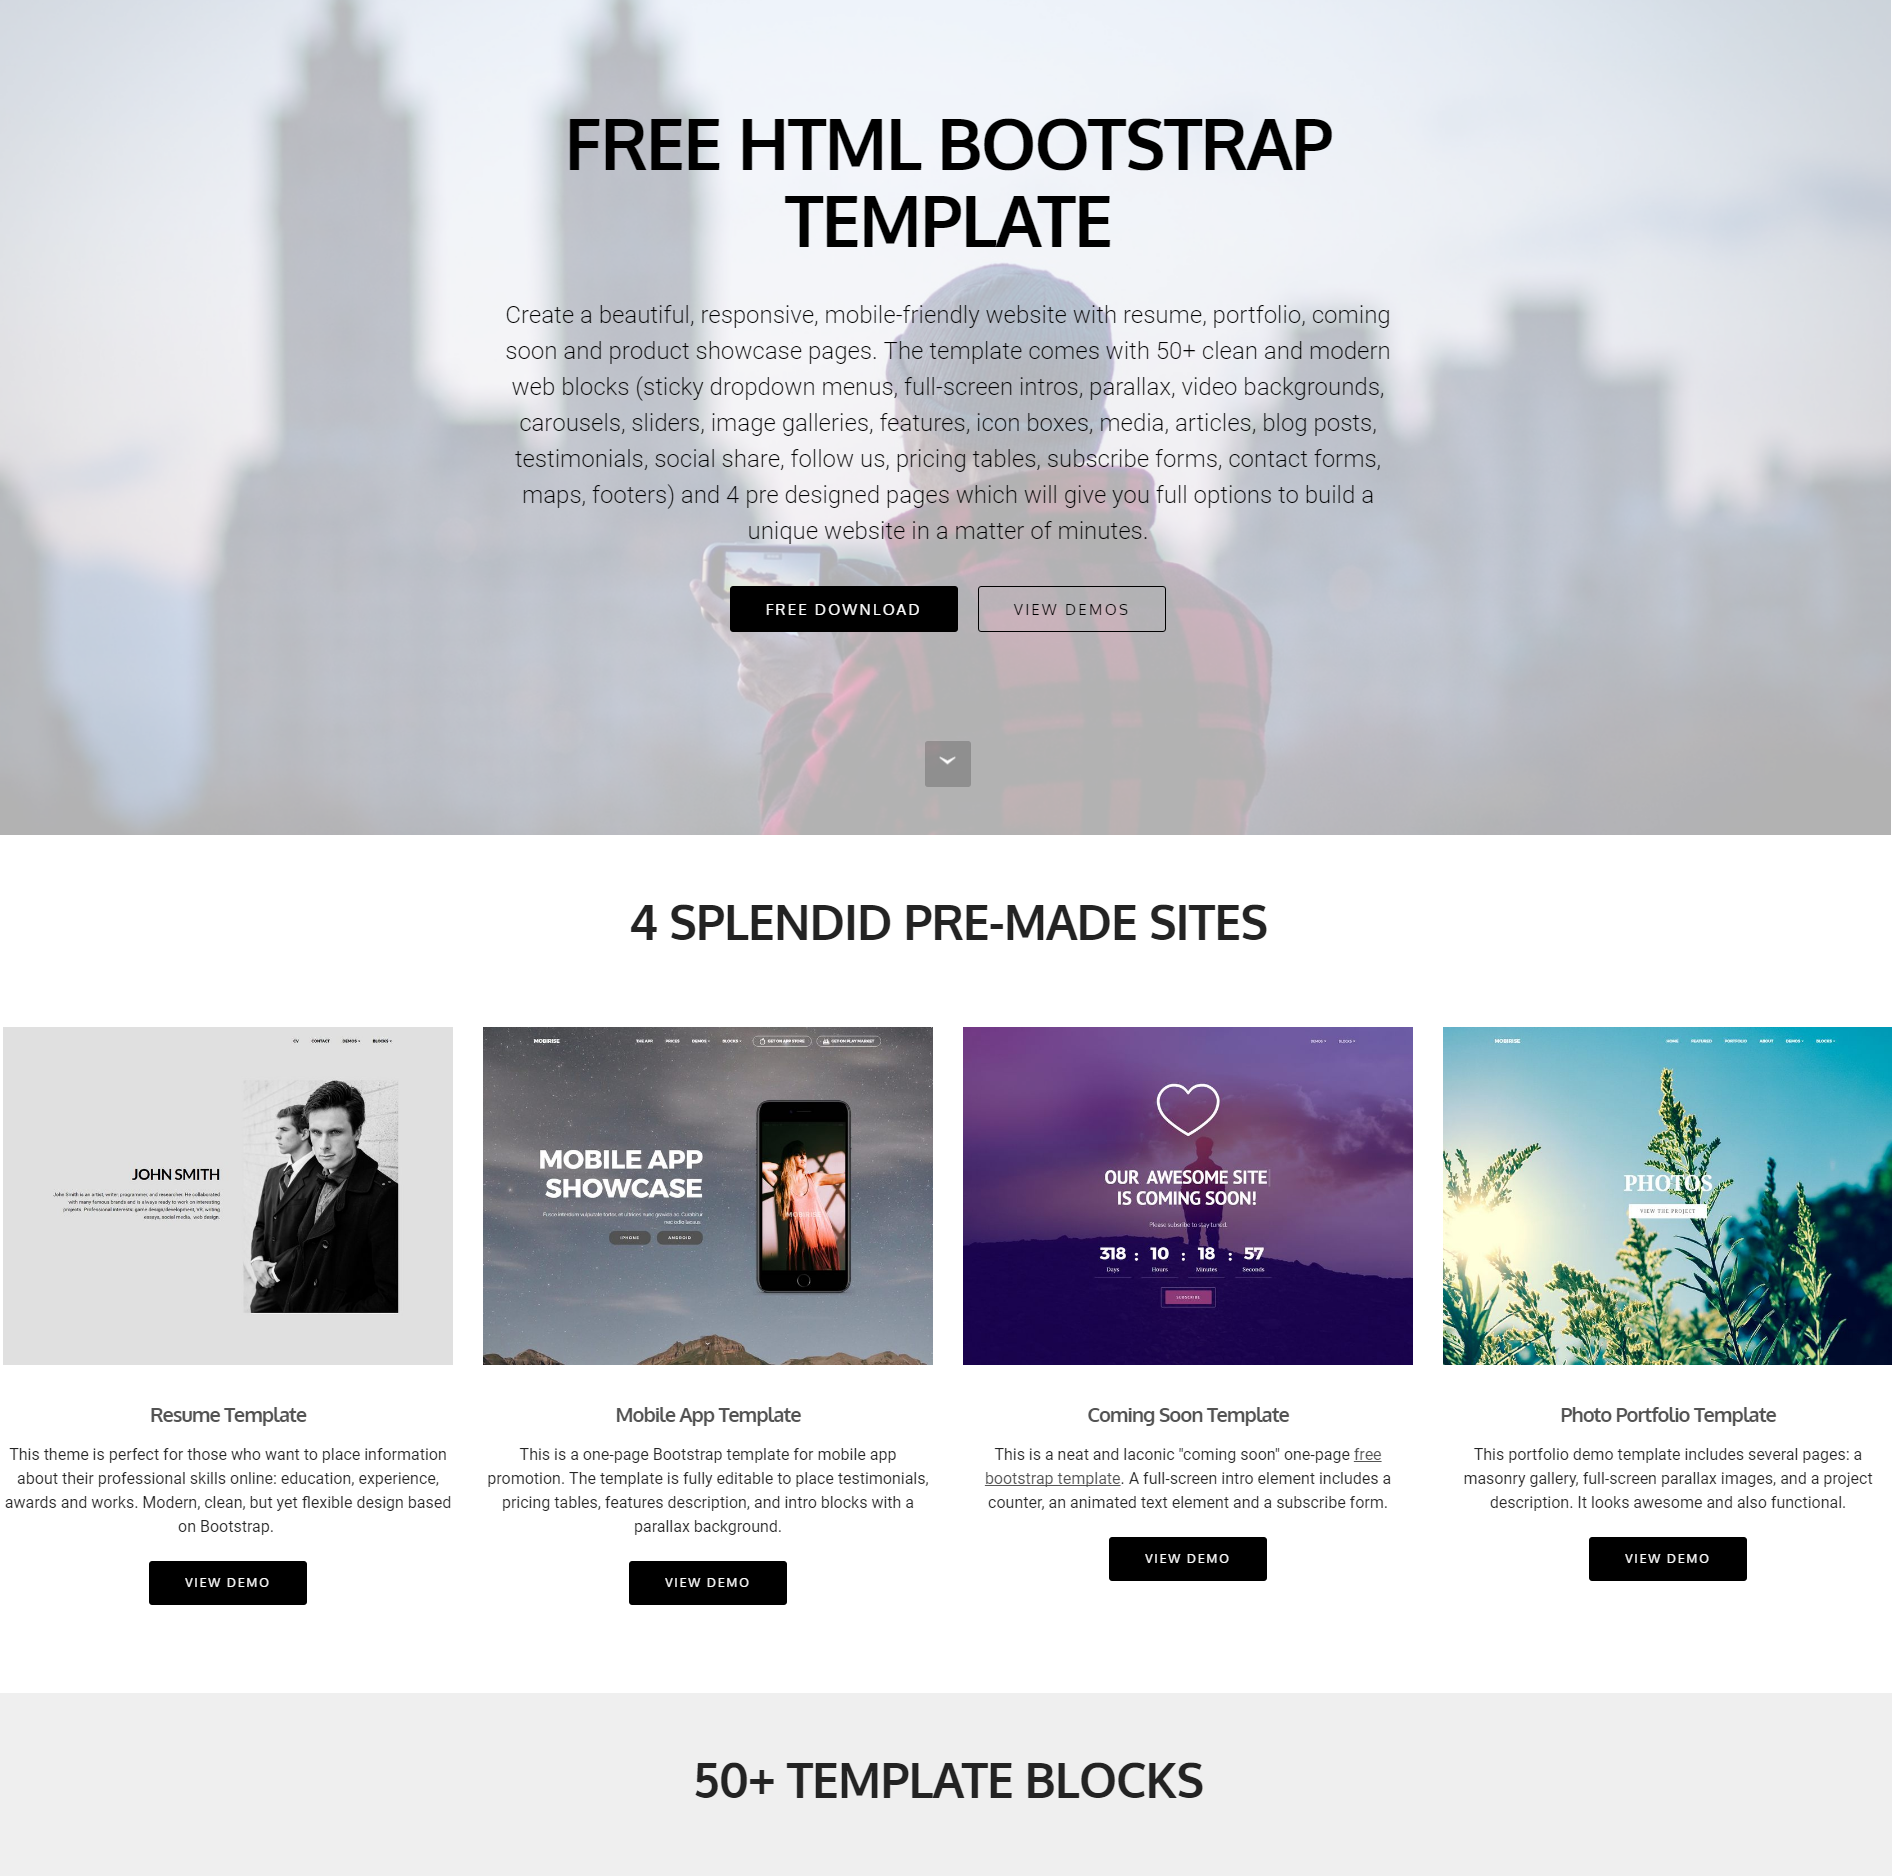 CSS3 Bootstrap 4 Blocks Templates